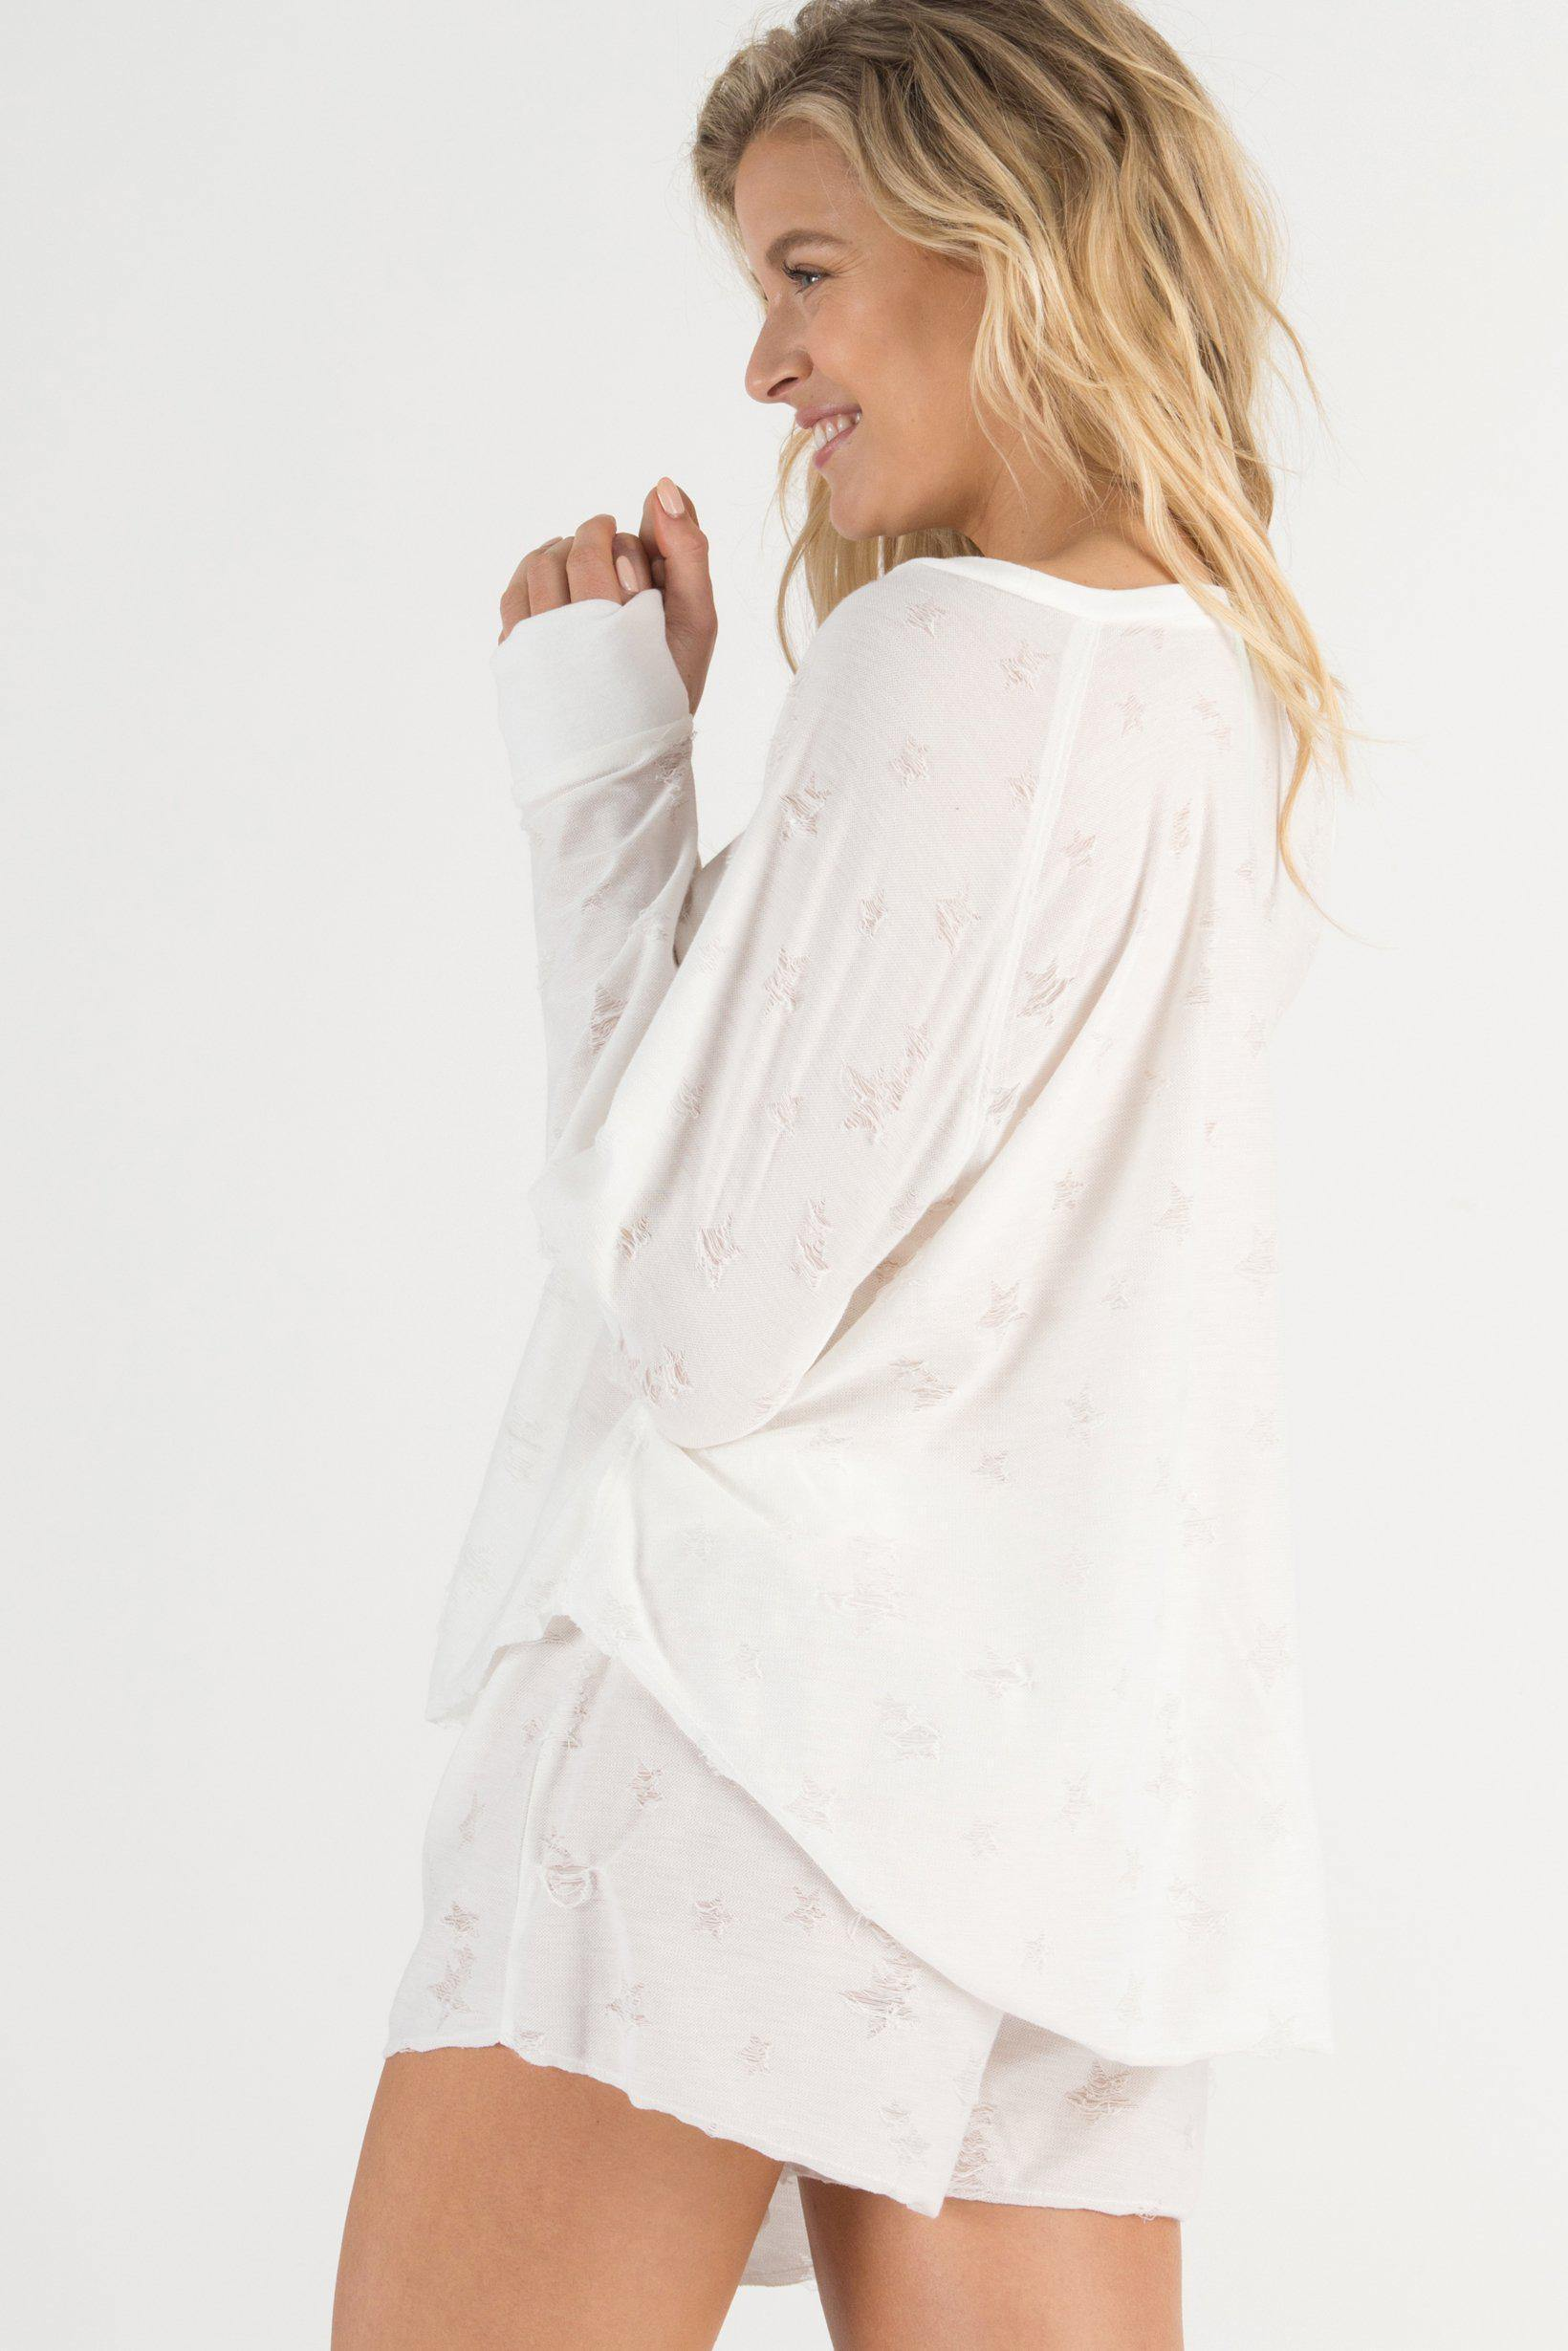 Starry Eyed Lounge Tee-Sleepwear-Honeydew Intimates-White-Small-Honeydew Intimates